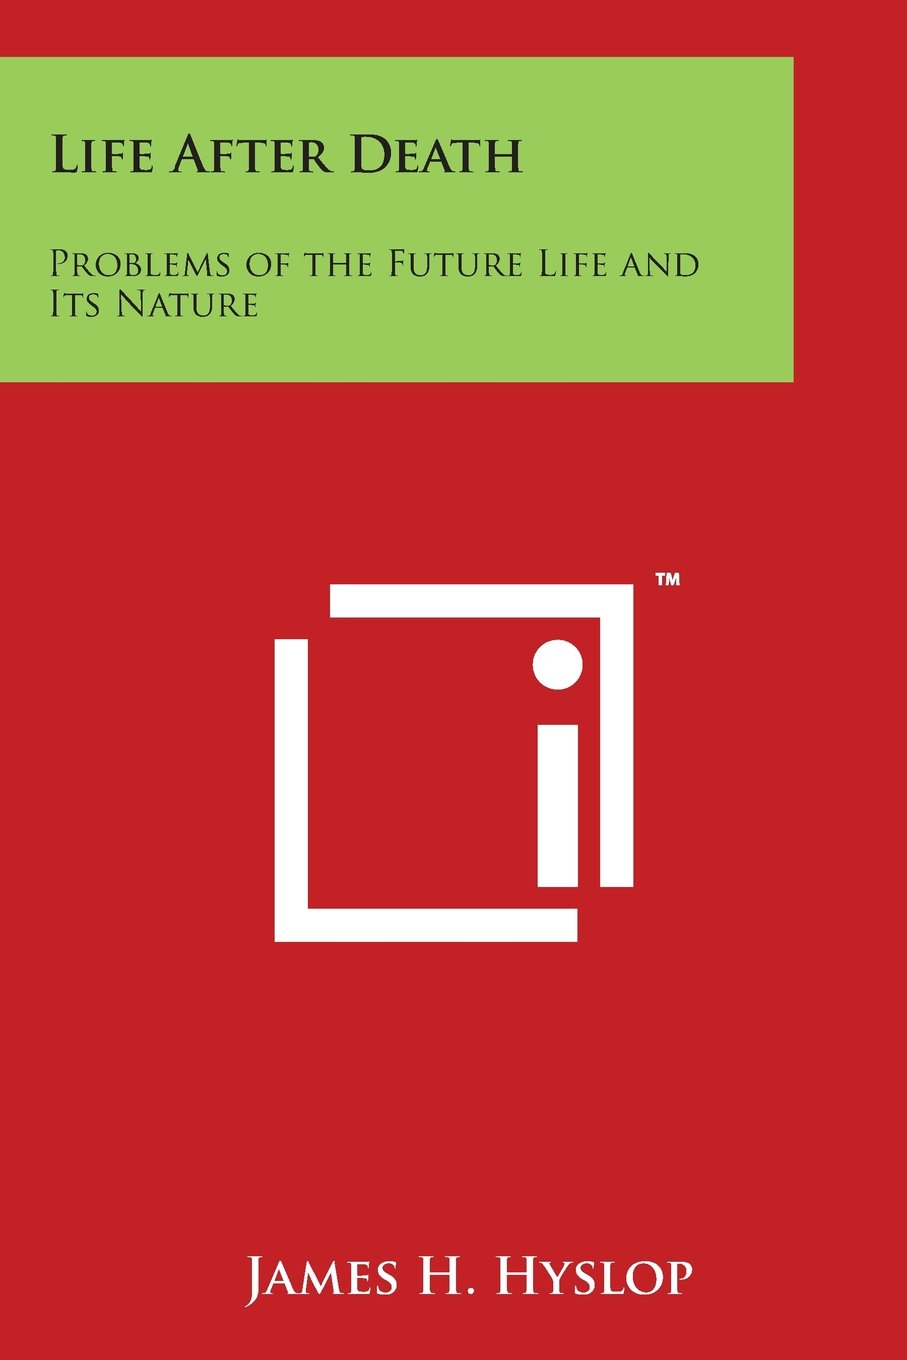 Life After Death: Problems of the Future Life and Its Nature PDF